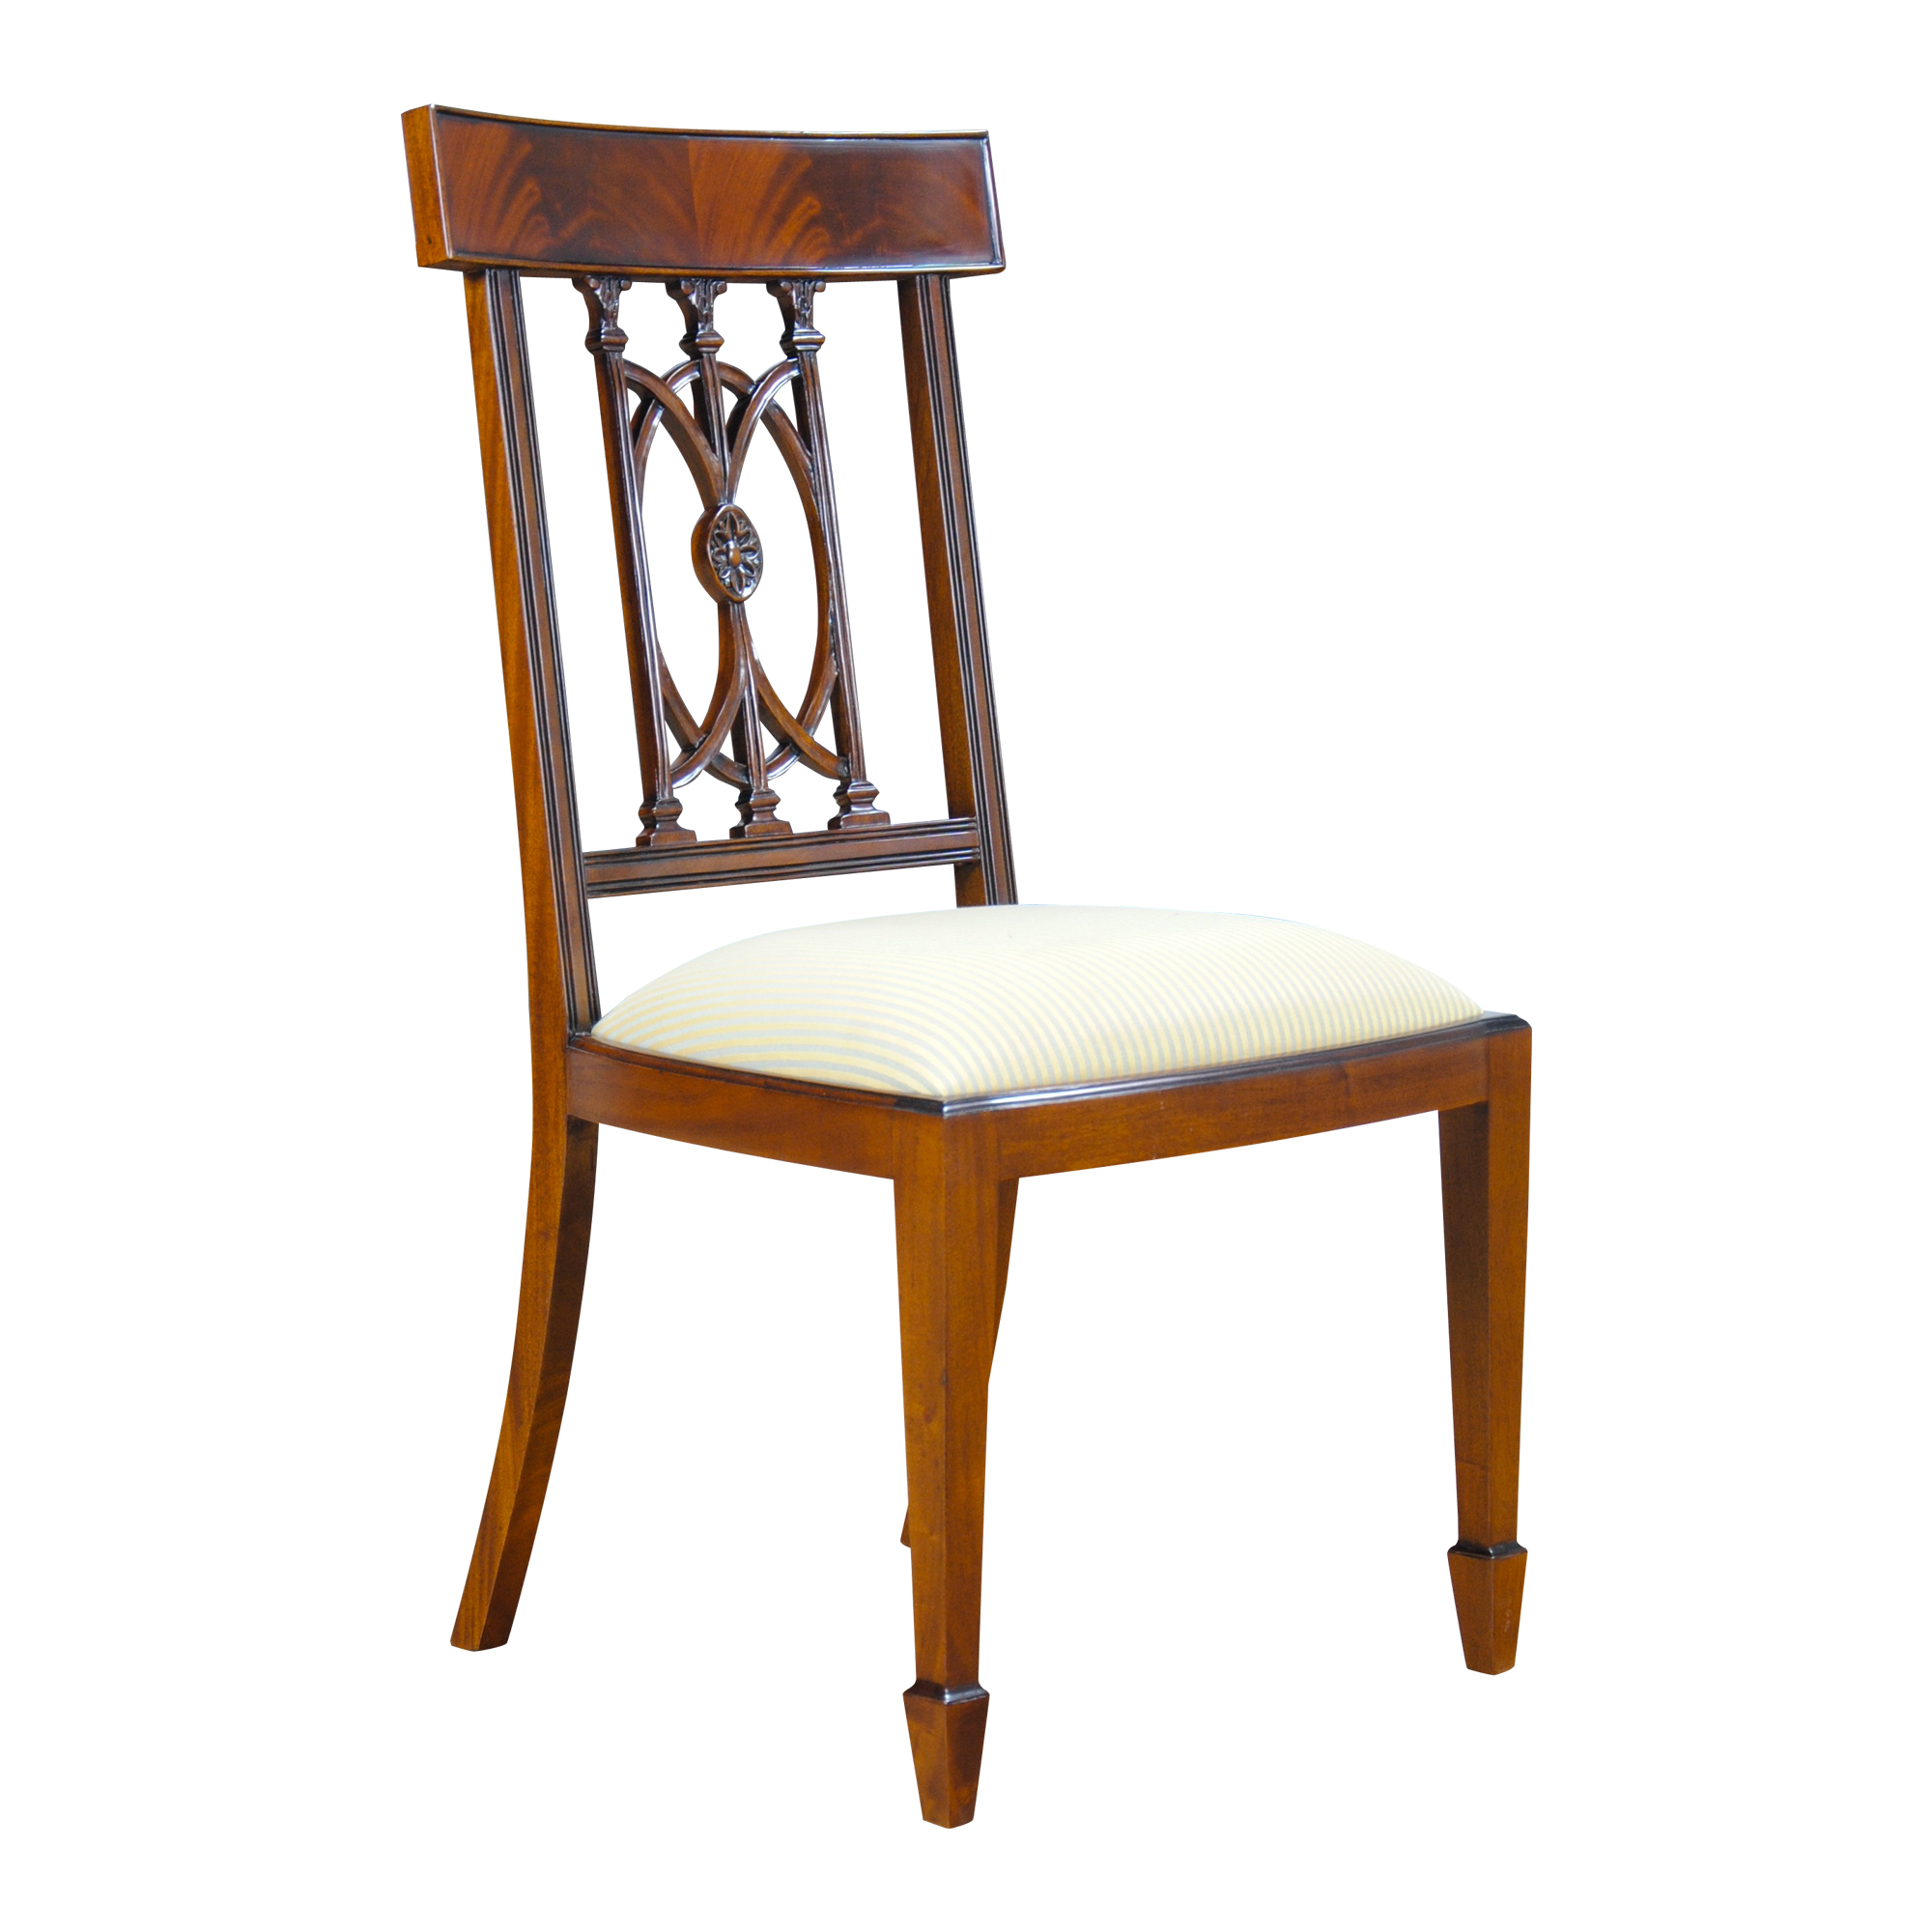 Furniture With Free Shipping: Mahogany Hepplewhite Side Chair, Niagara Furniture, Free